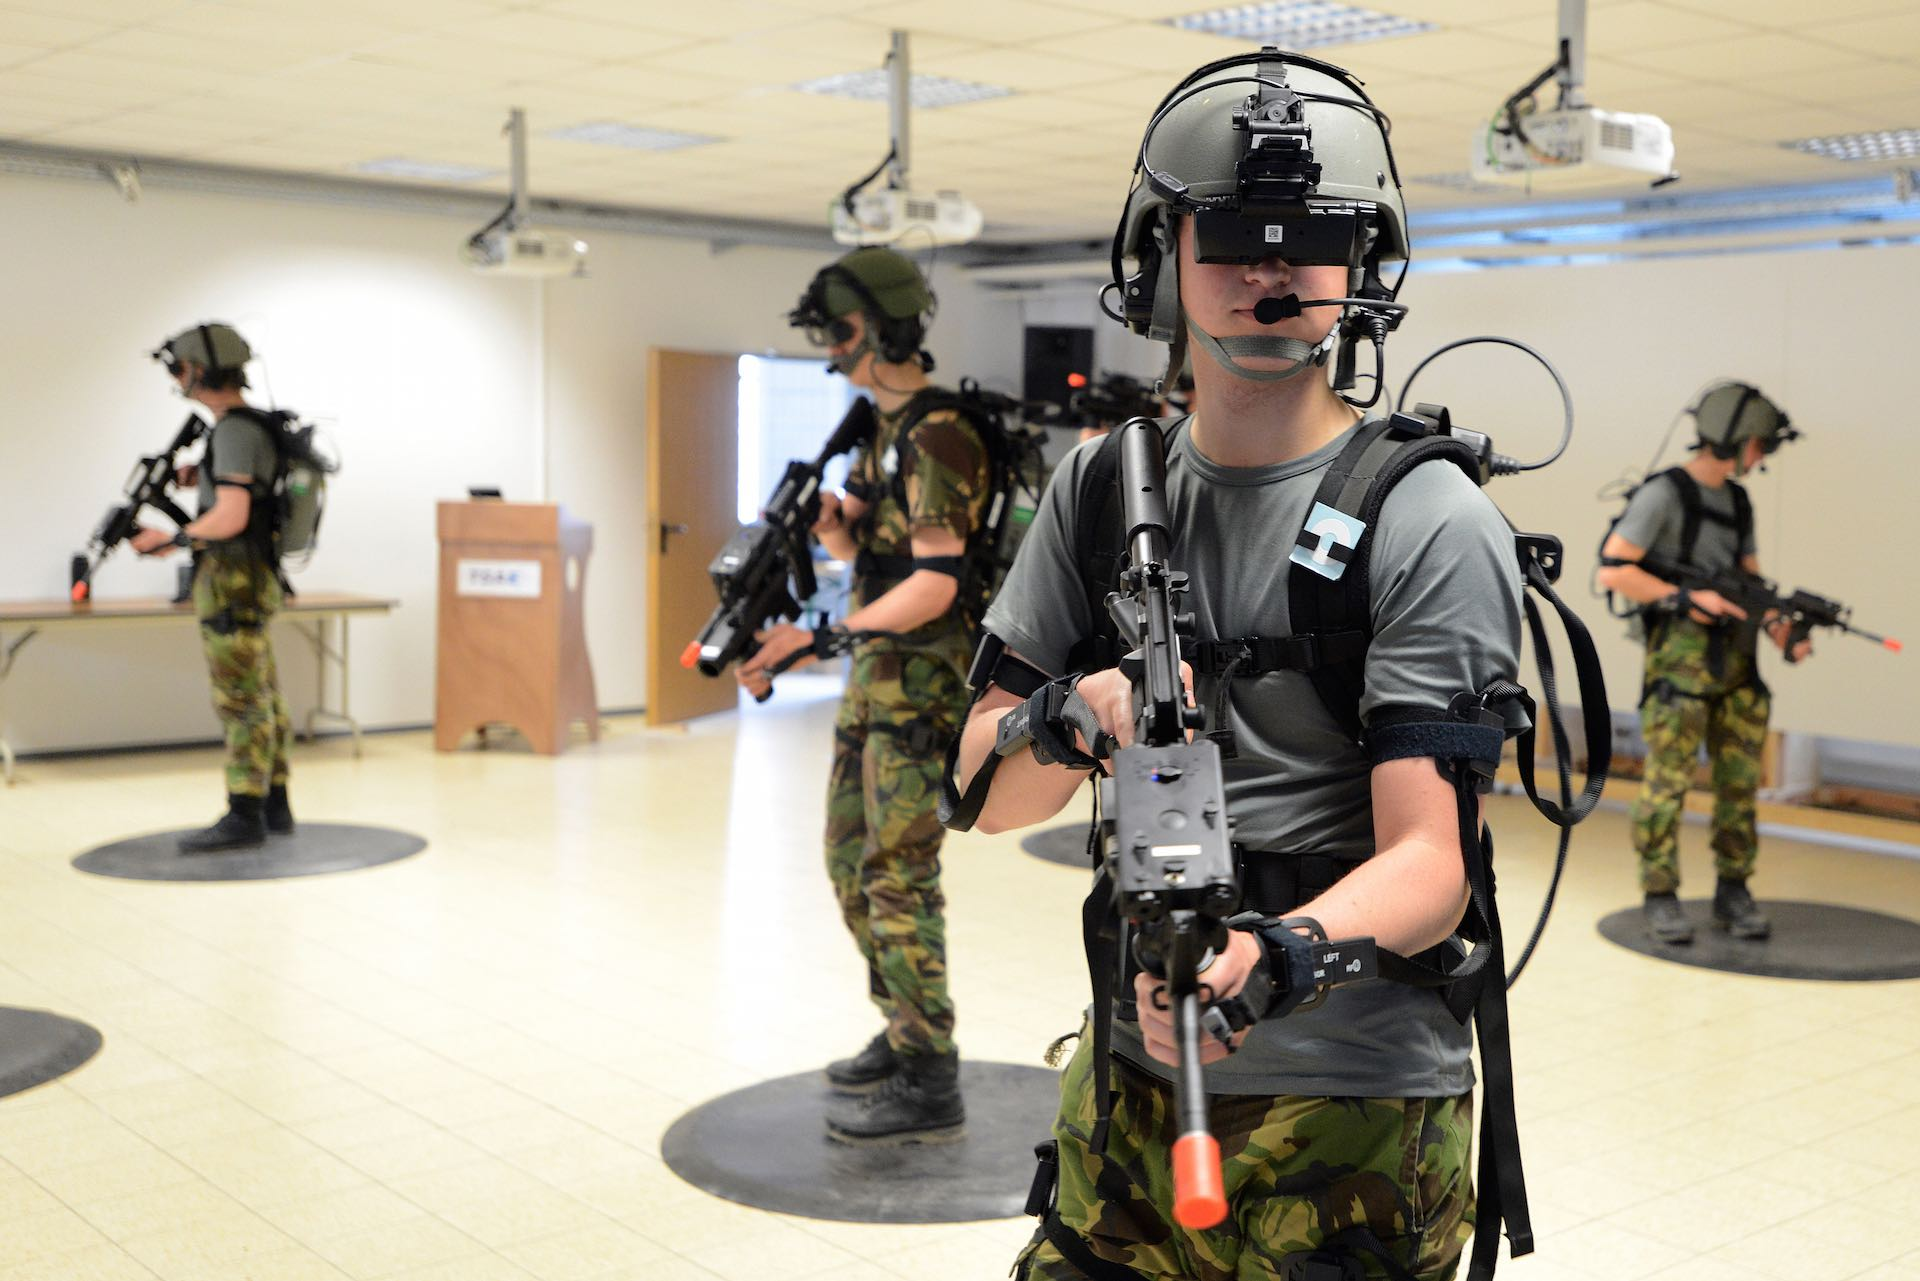 The Gulf Between High End Military VR and Consumer VR is Rapidly Shrinking – Road to VR